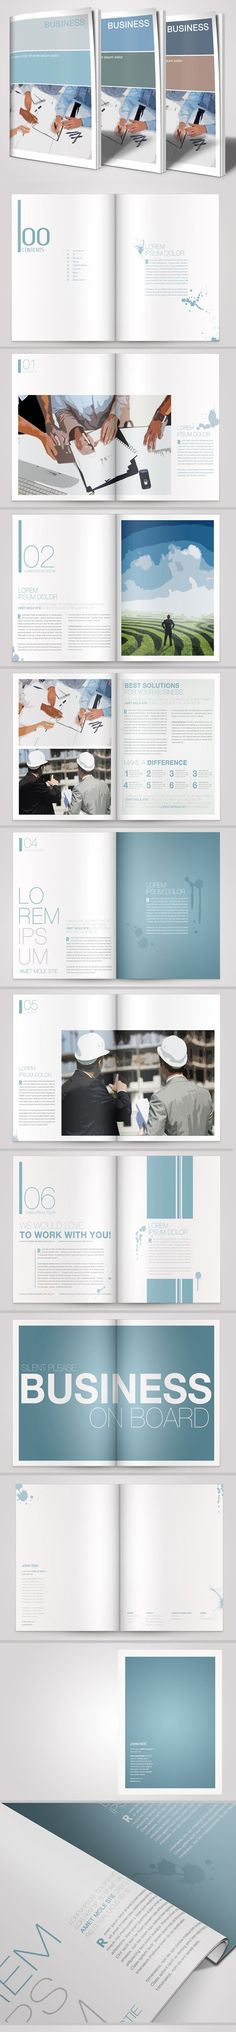 brochure layout - image trace images....